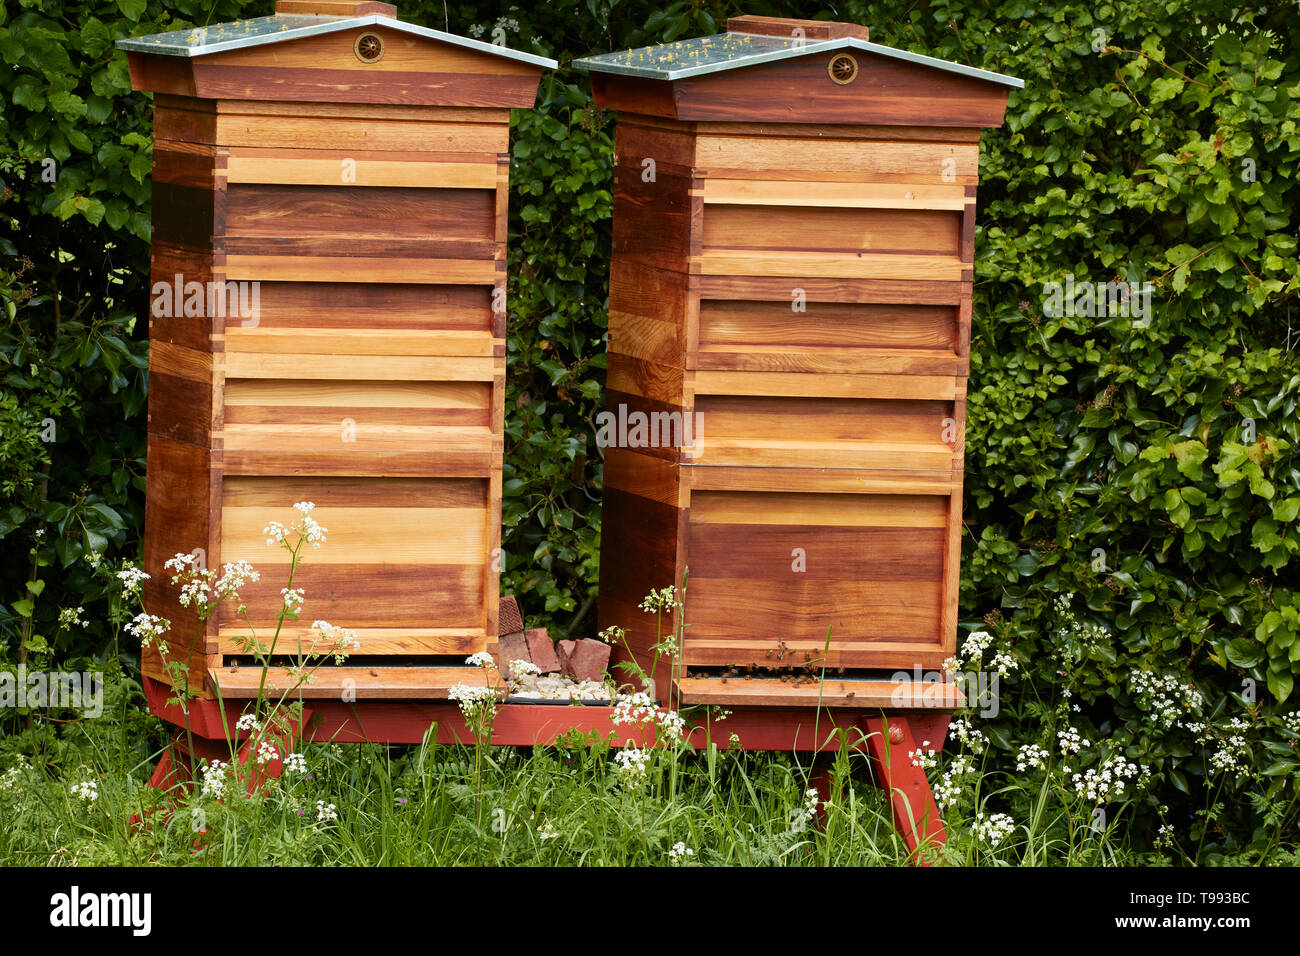 Beehives in the grounds of Anne Hathaway's Cottage, Shottery, Stratford-upon-Avon, England, United Kingdom, Europe - Stock Image